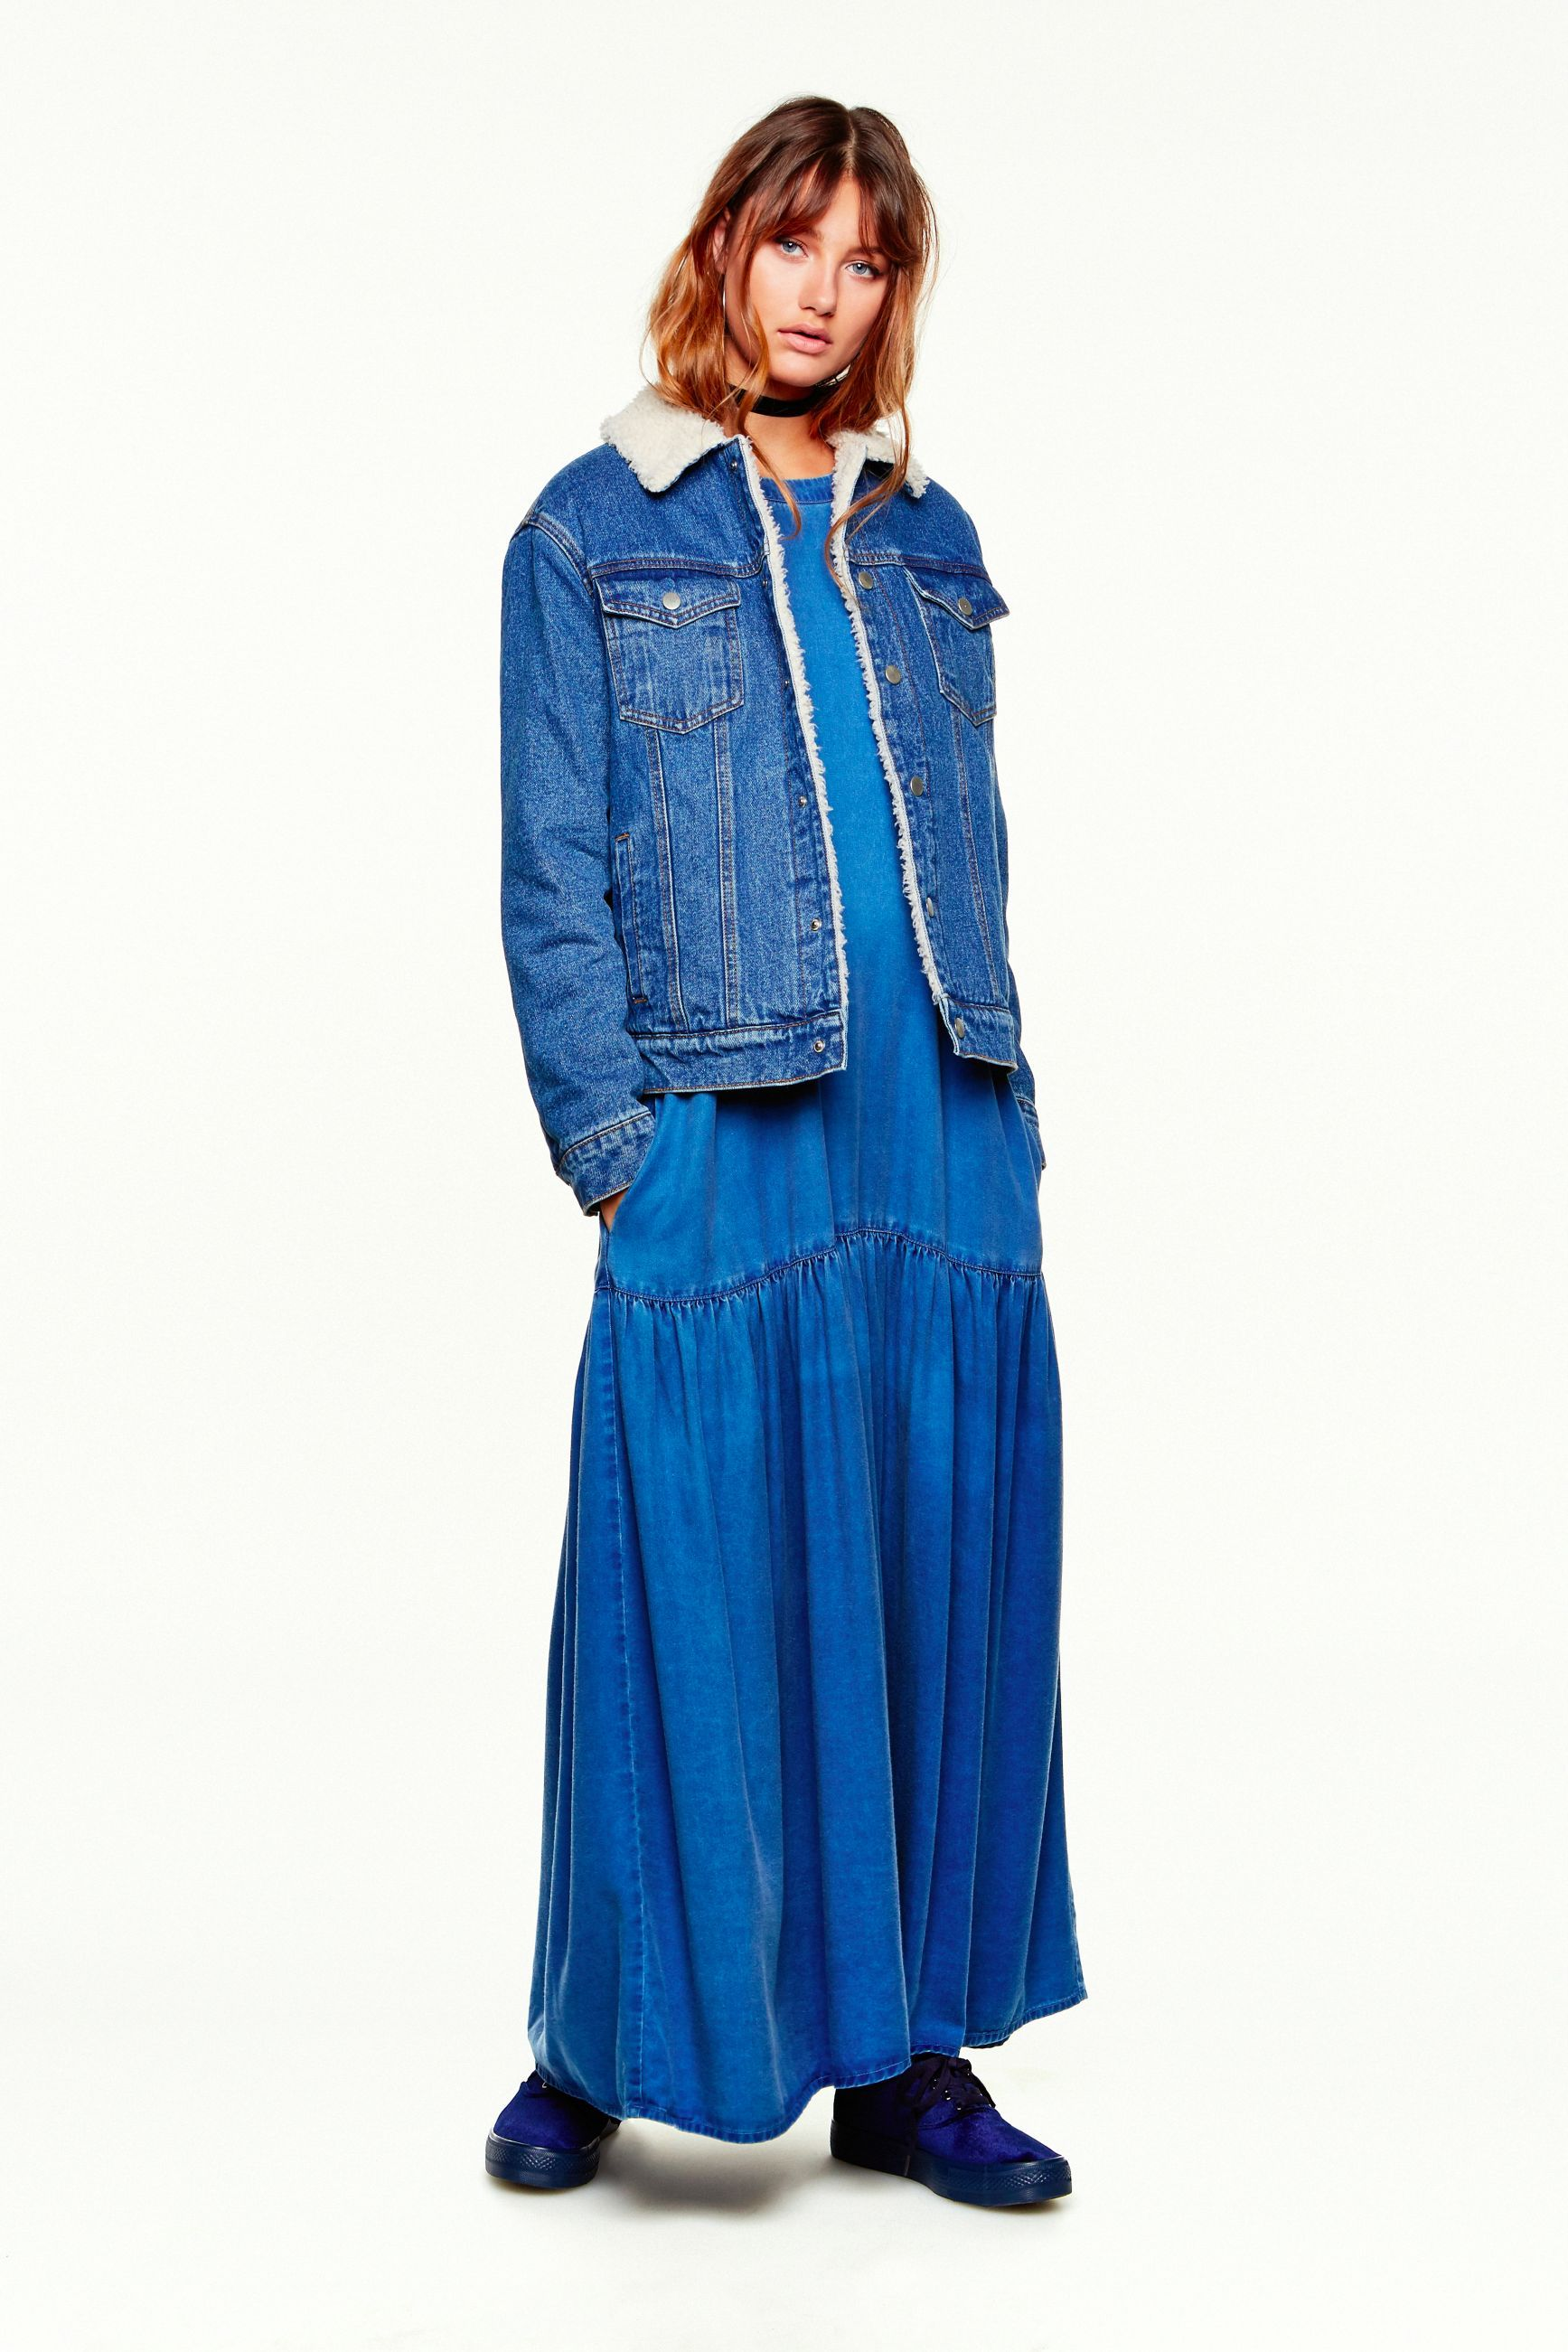 A denim jacket with faux fur lining over a maxi dress from the CASTRO Jeans Symphony collection